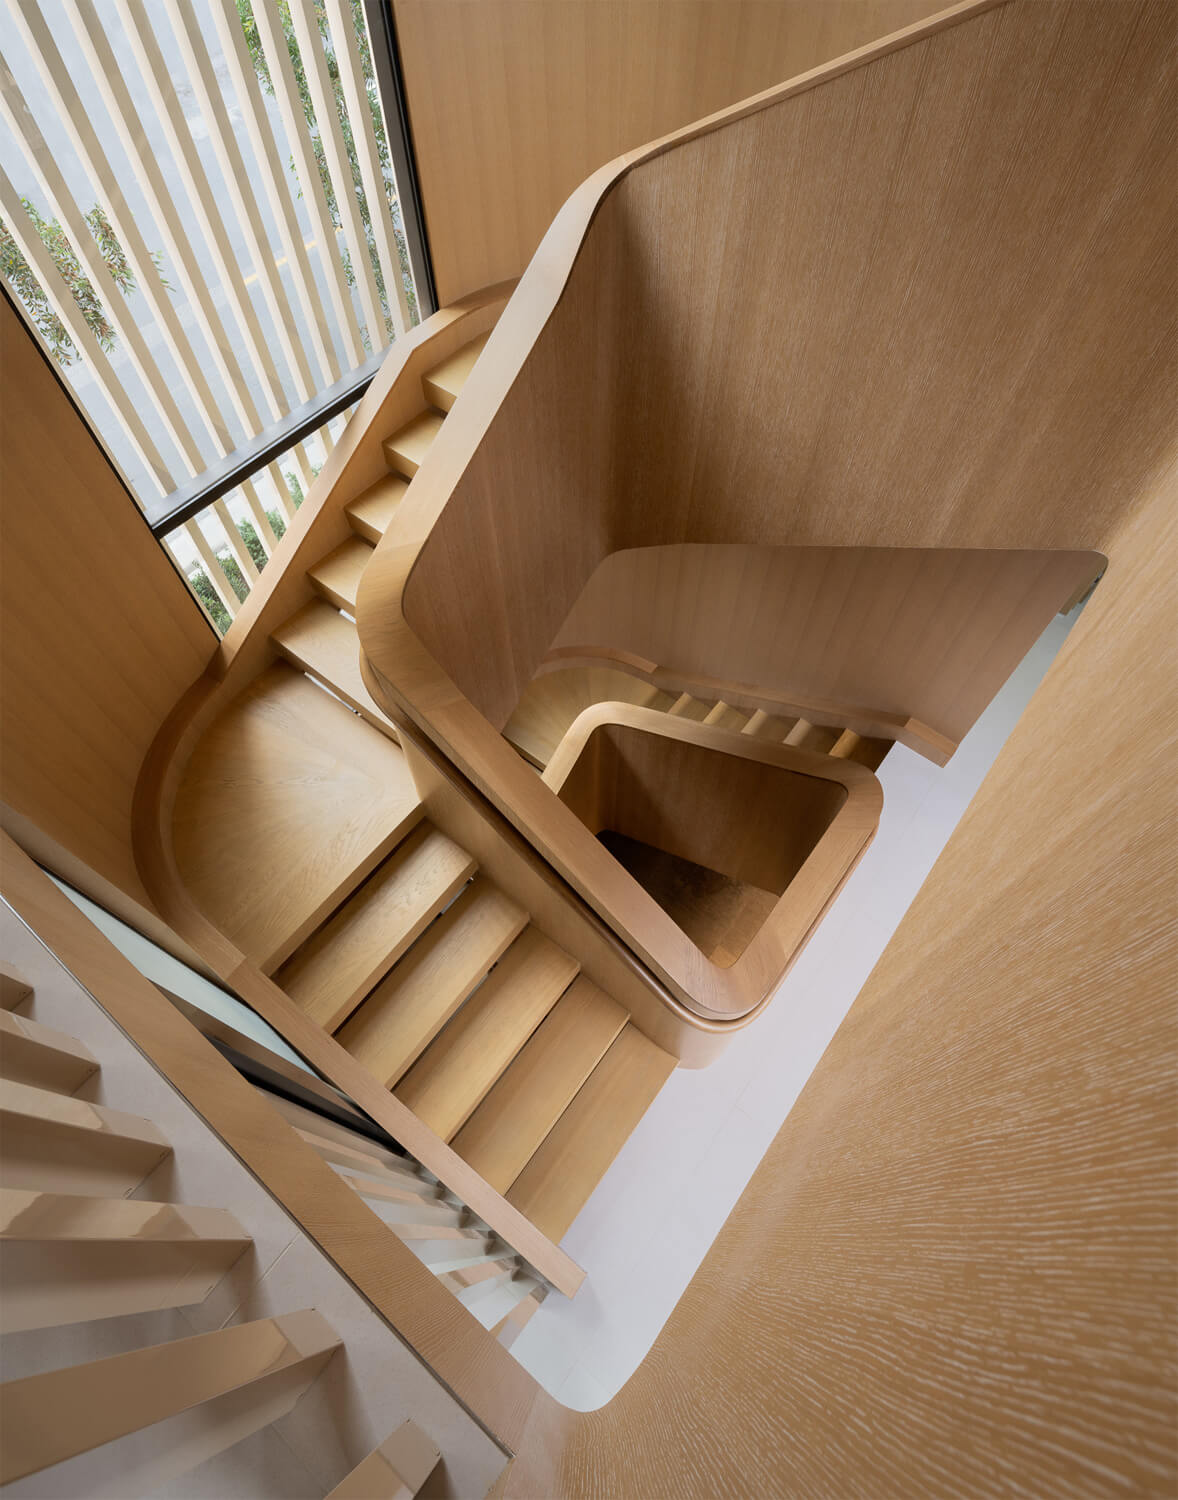 staircase designed by architect Laney LA